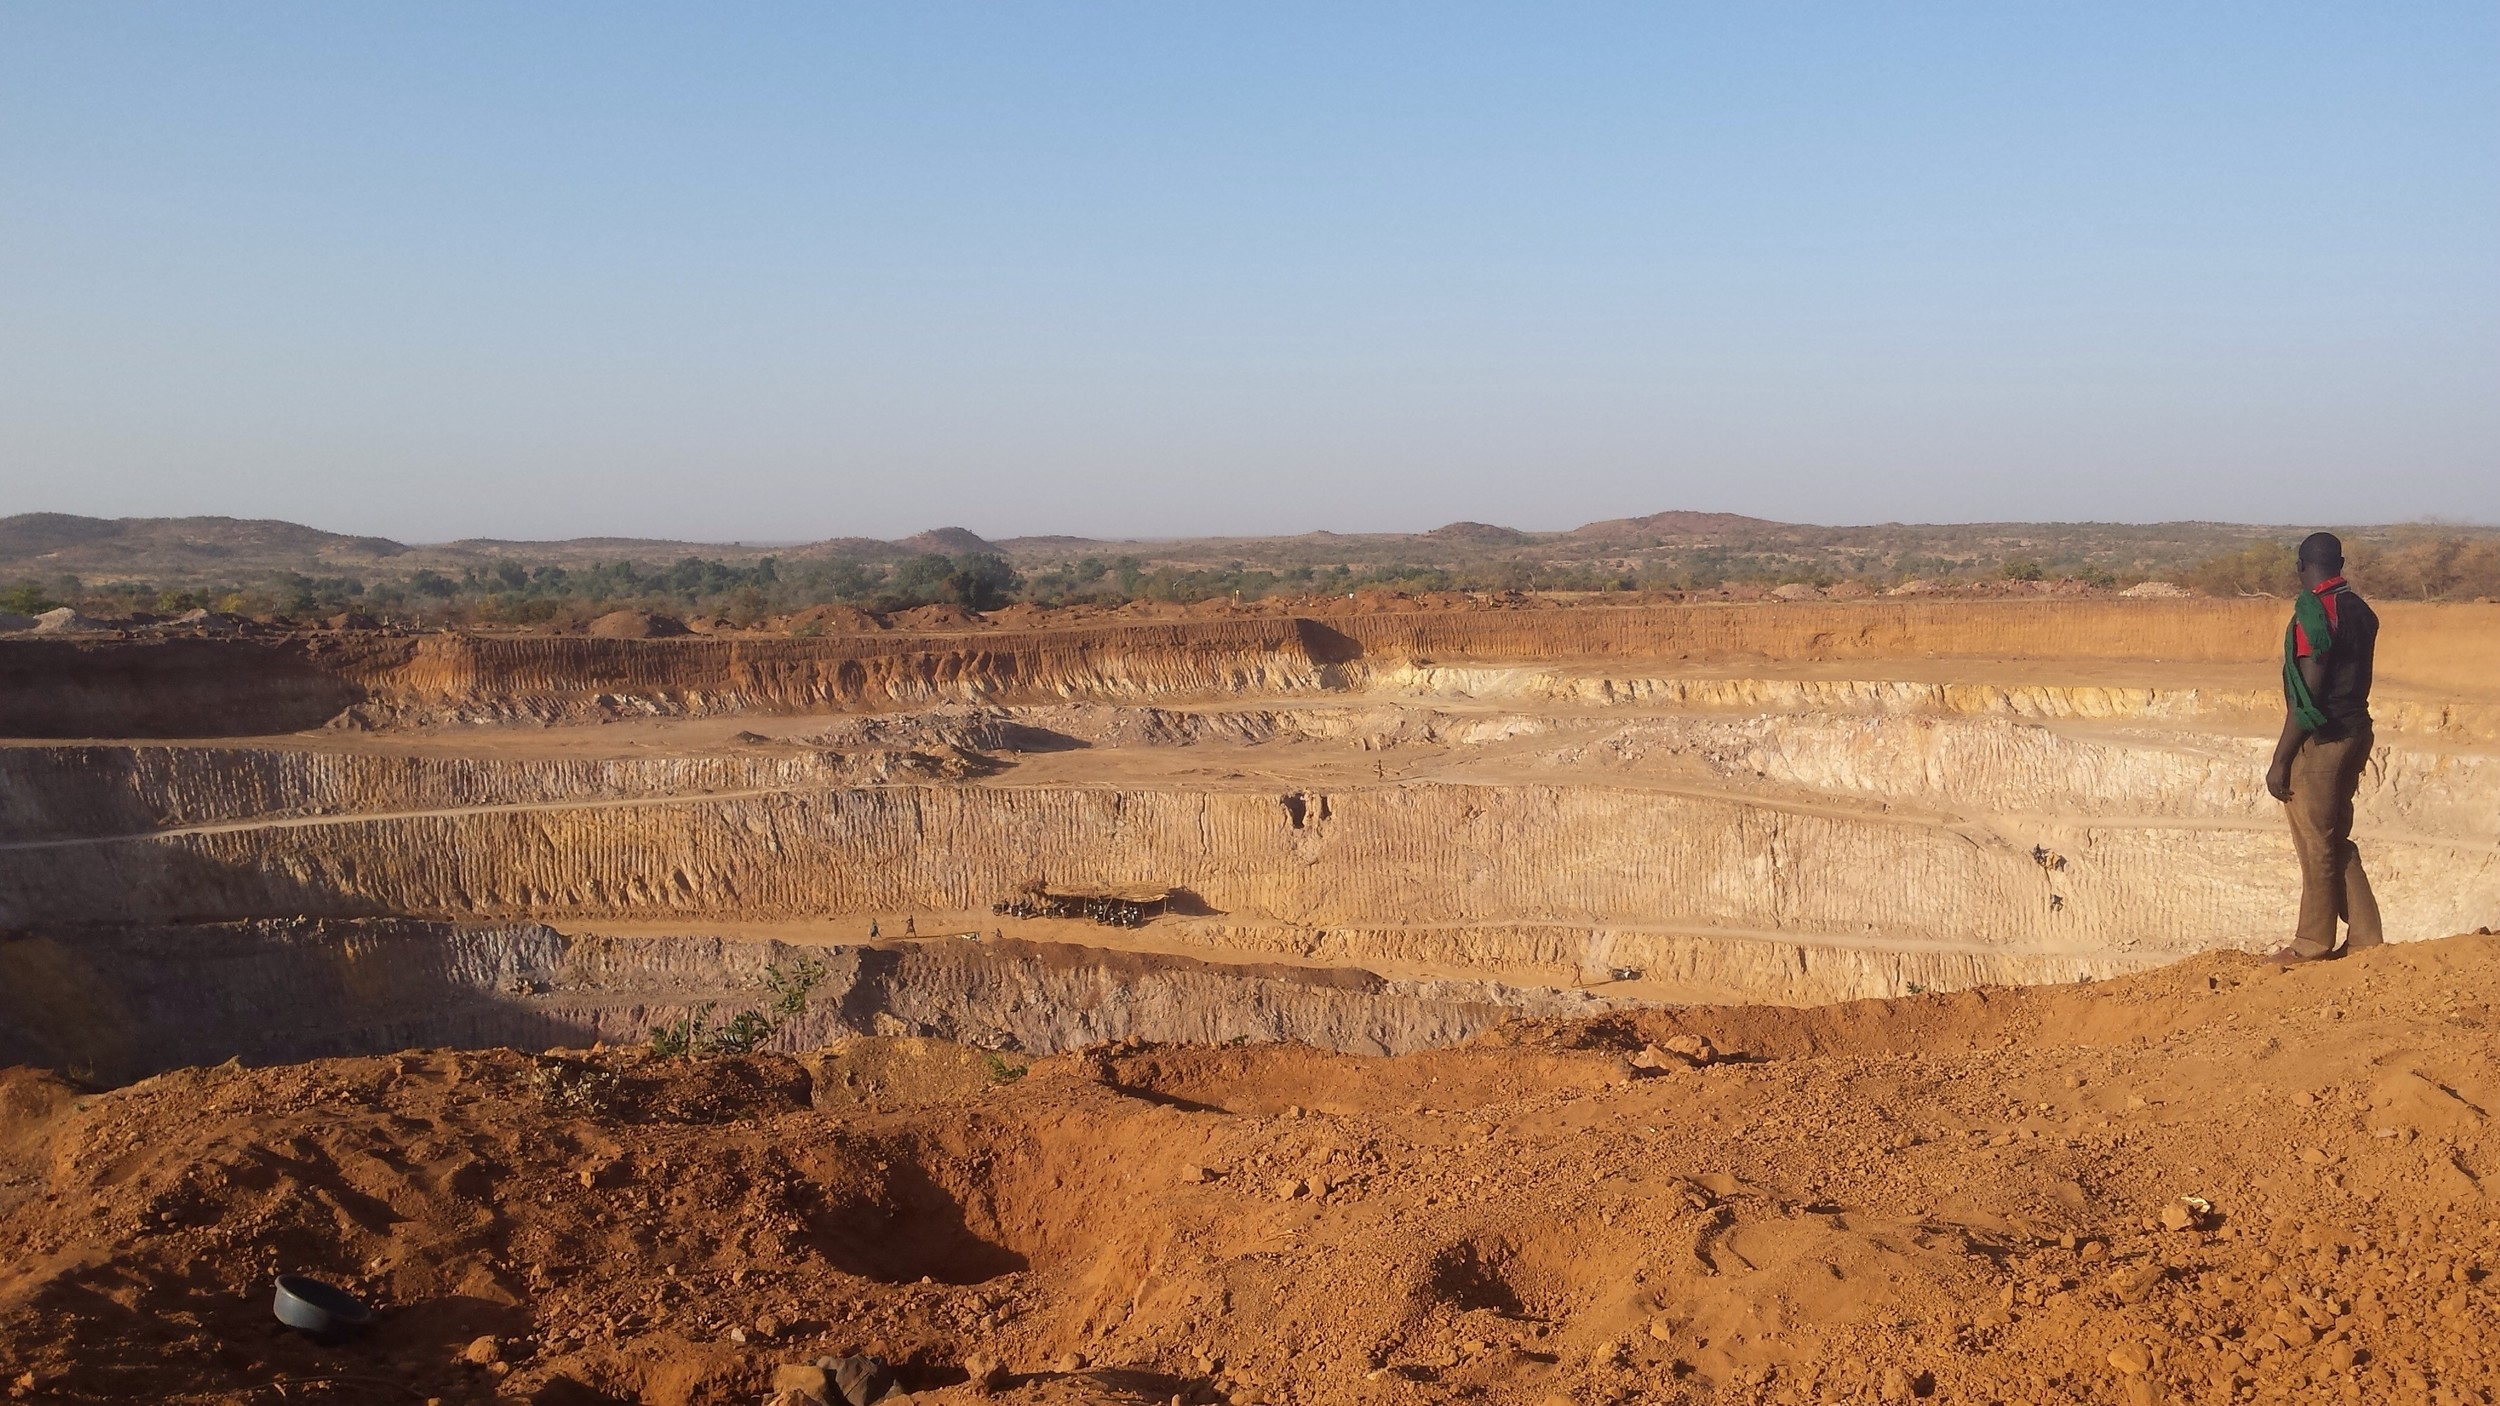 AMARA gold mine in Bakou, Burkina Faso (photo: Muriel Côte, December 2014)